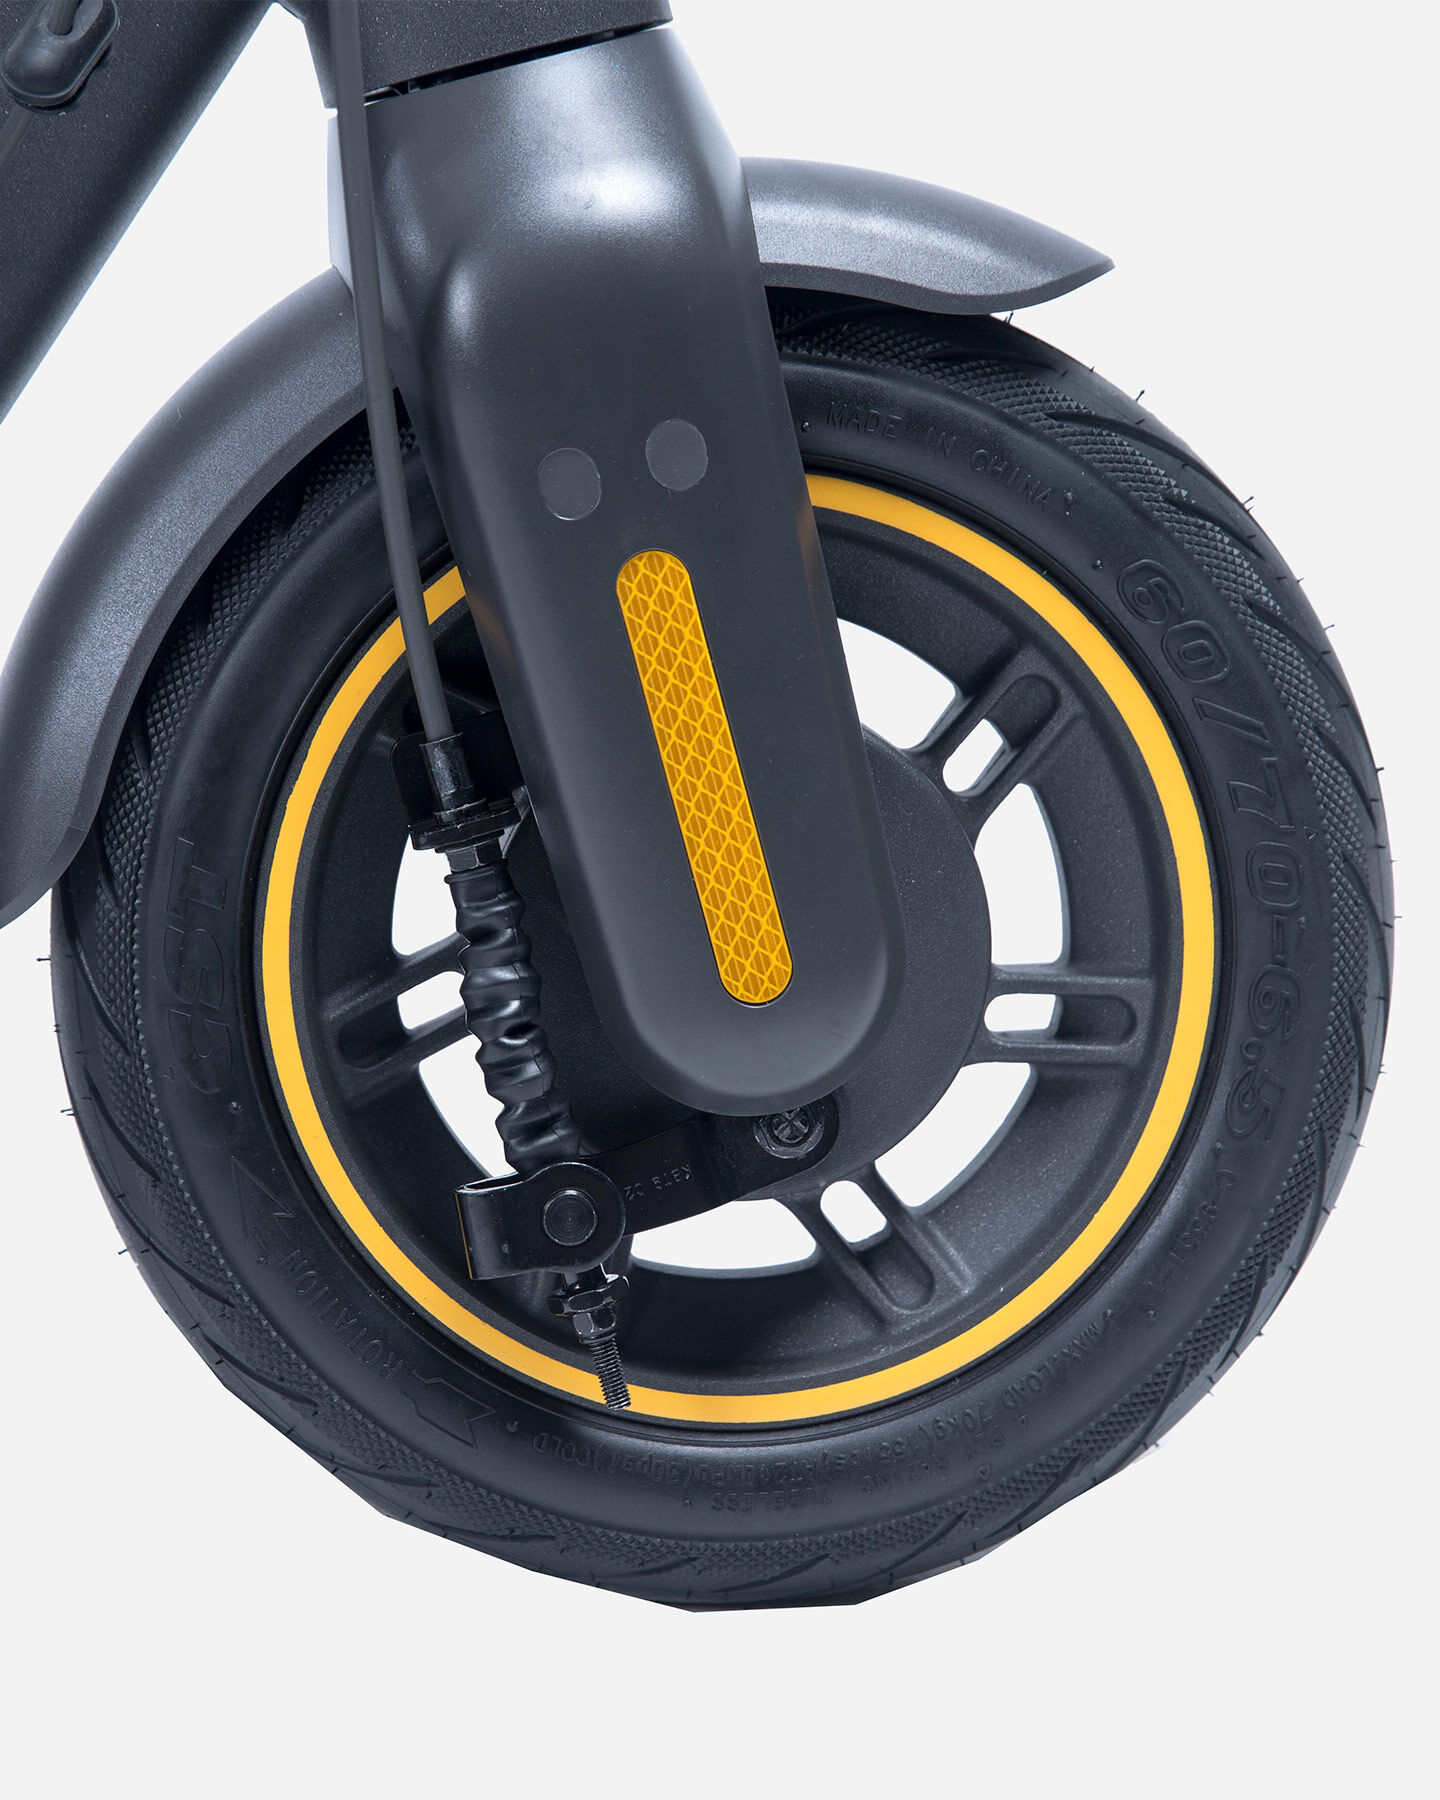 Scooter elettrico NINEBOT E-SCOOTER SEGWAY MAX G30 S4084400|1|UNI scatto 3